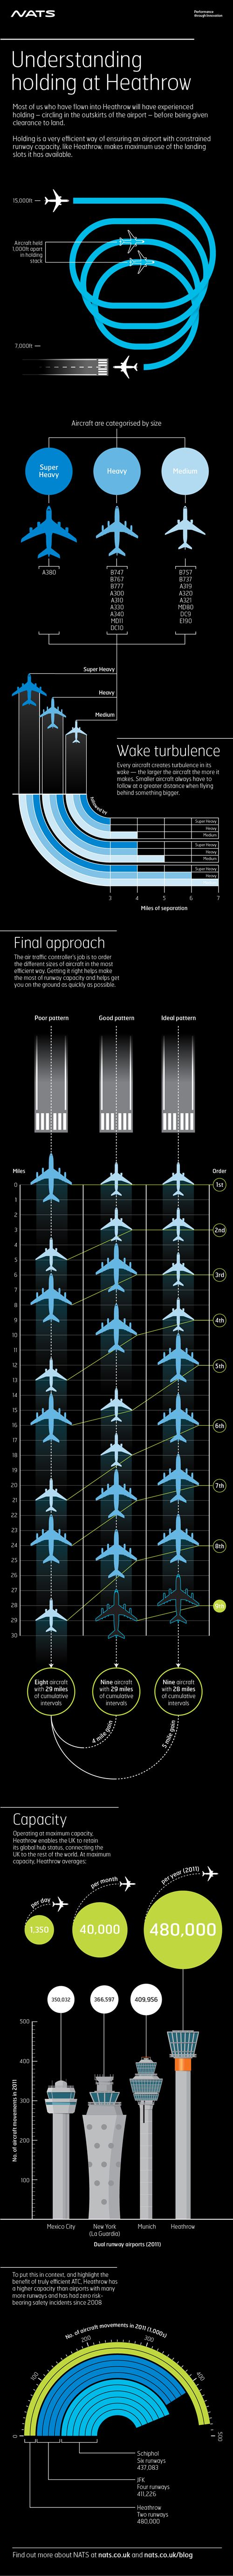 Why do aircraft 'hold' at London Heathrow Airport? There is a reason behind being 'held', this infographic provides you with more information.